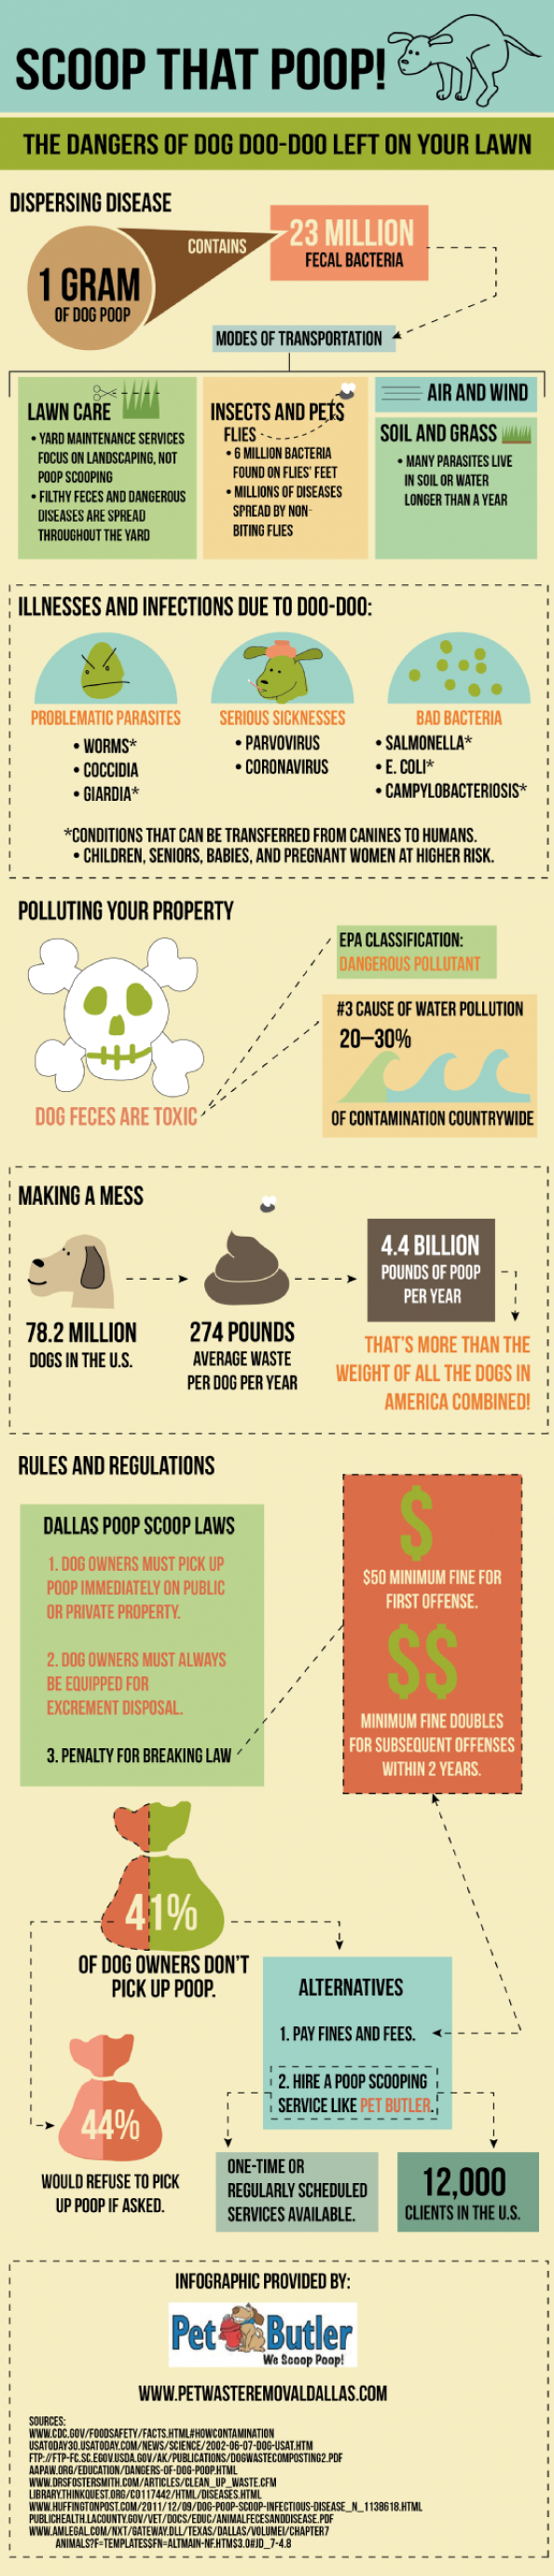 Scoop that Poop! The Dangers of Dog Doo-Doo Left on Your Lawn Infographic